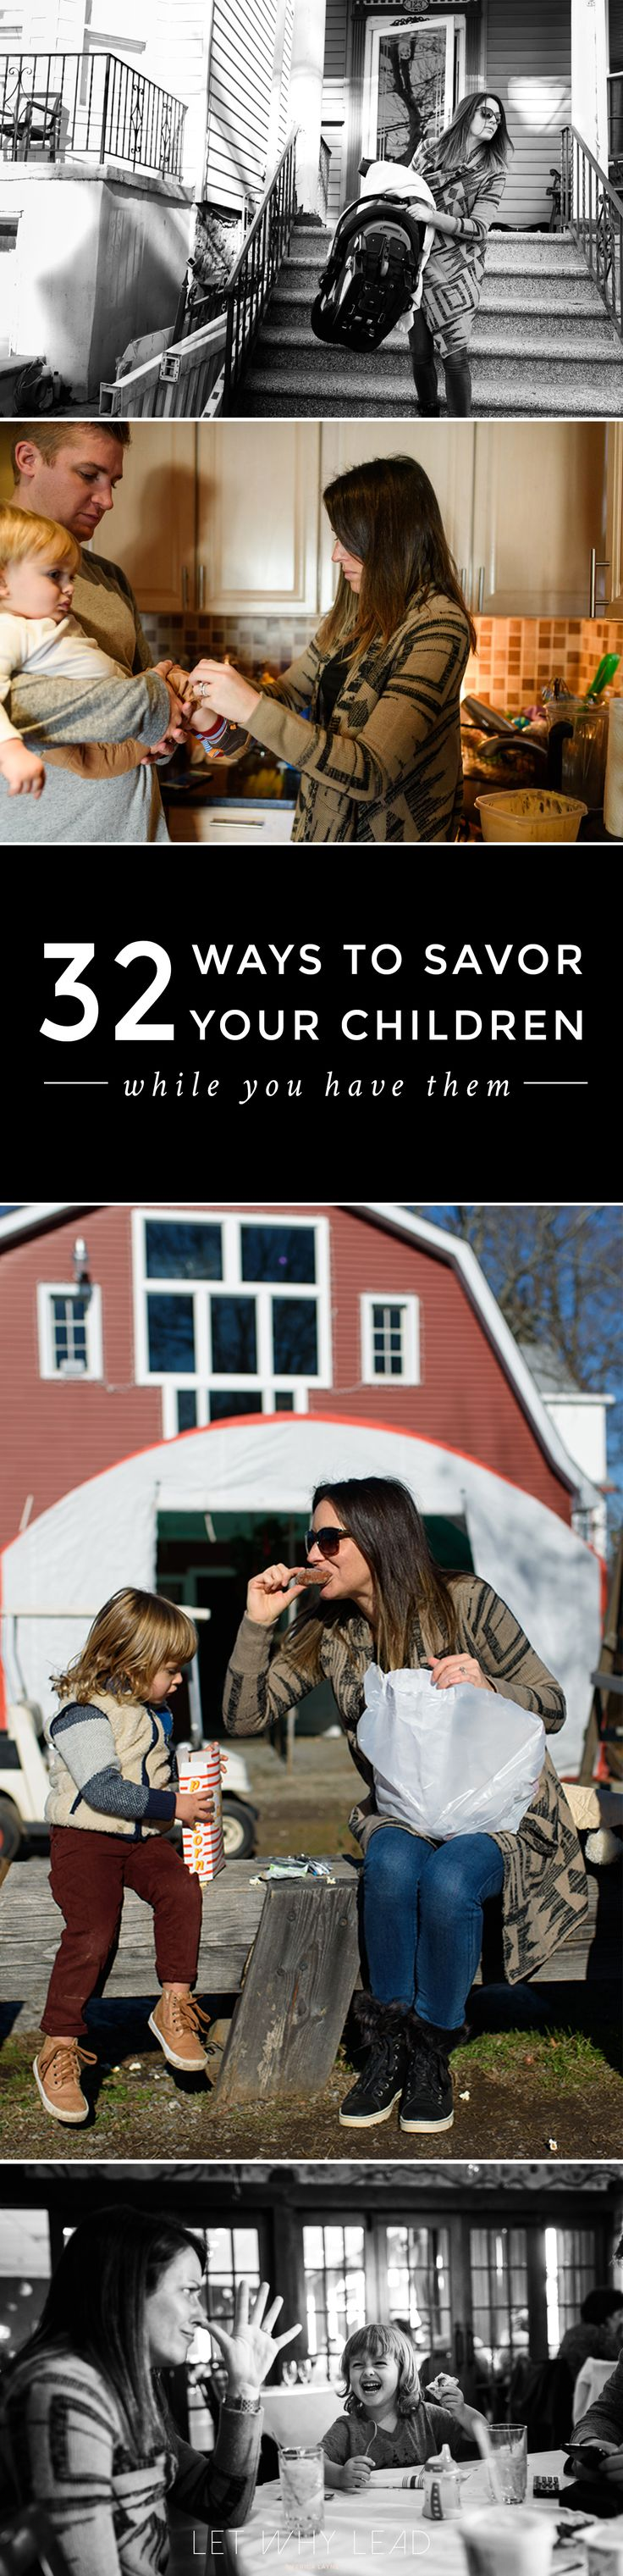 I LOVE THIS We know it goes fast, but savoring these days with our kids isn't as easy as we'd like. For inspiration—32 Ways to Savor Your Children While You have Them